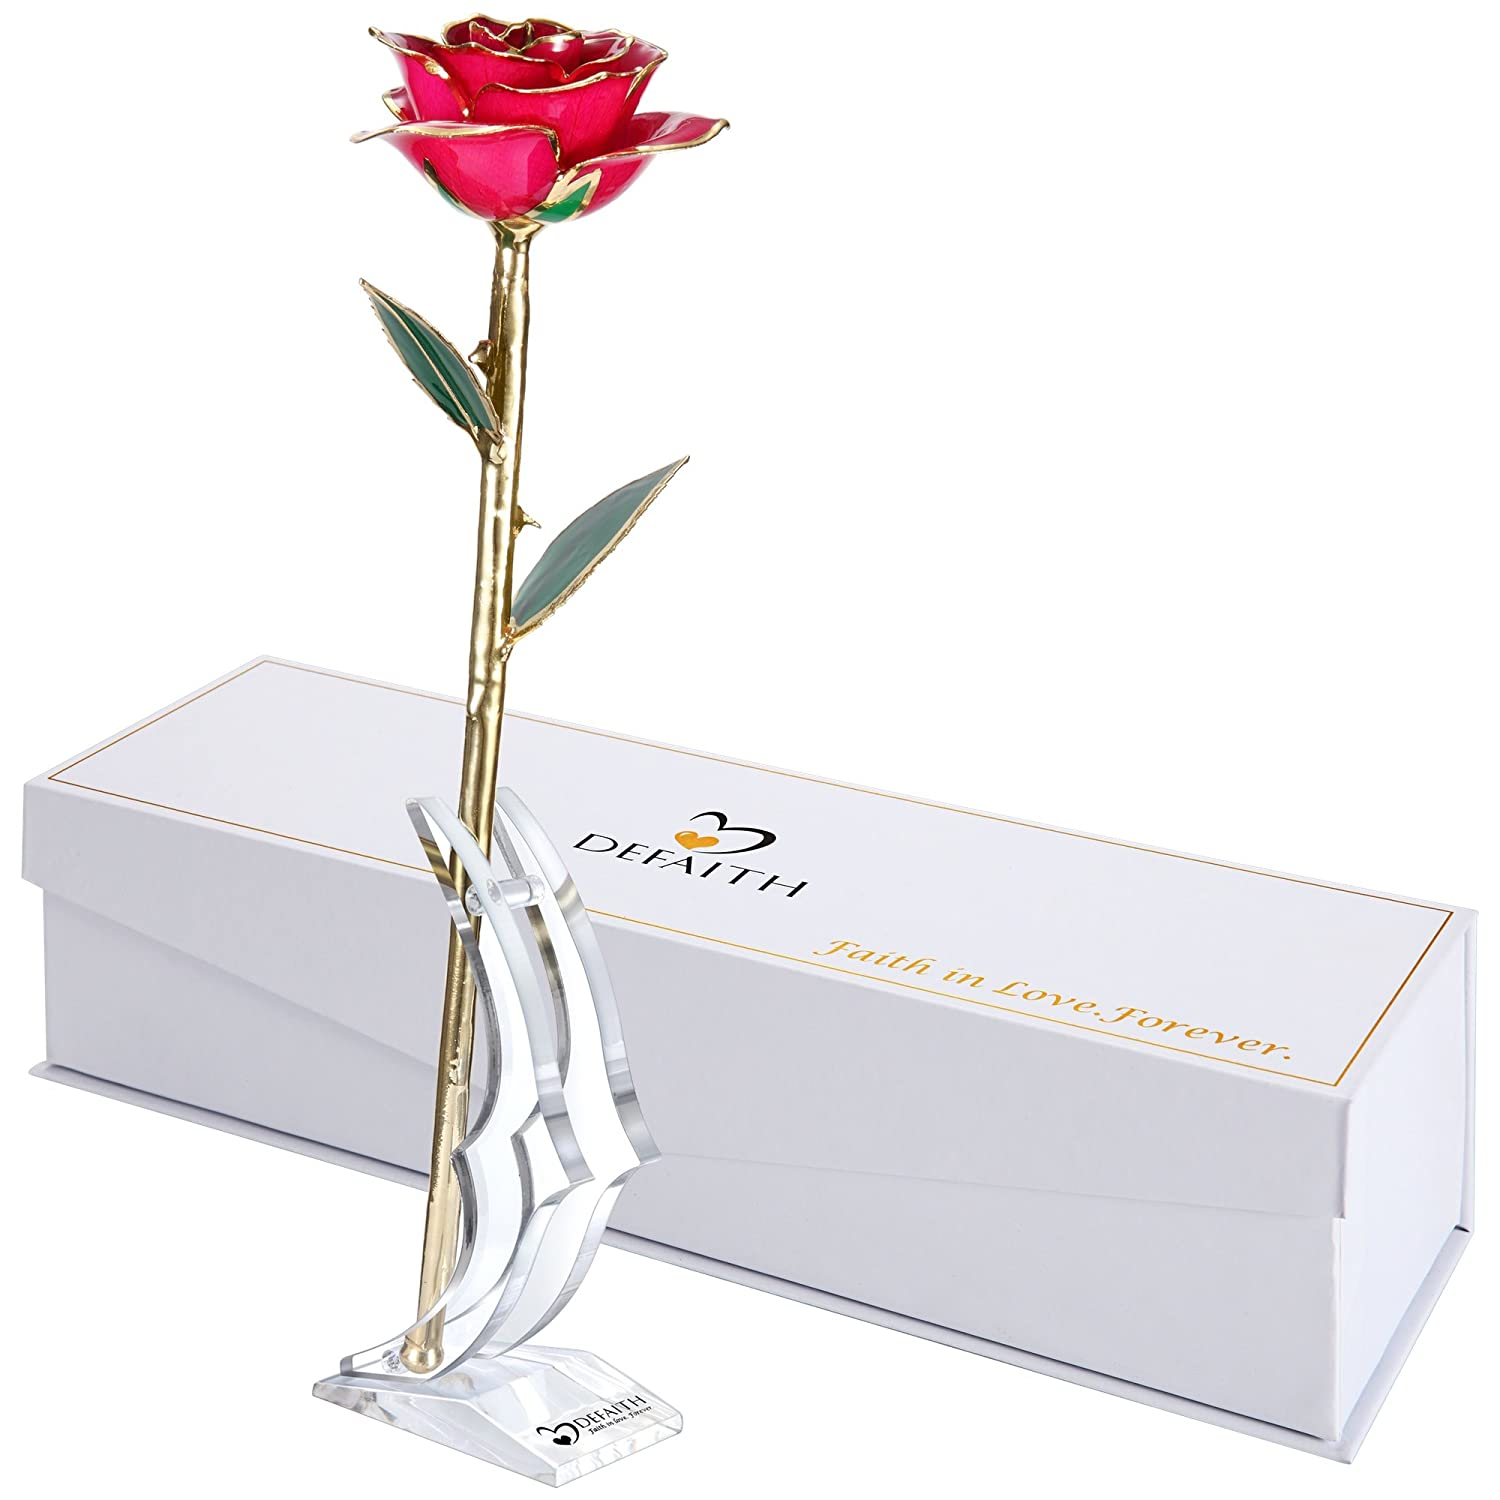 (C.deep Pink) - DeFaith Deep Pink 24K Gold Rose, Unique Anniversary Gifts for Mother Wife Girlfriend Her Women, Made from Real Rose Flower with Stand B014IZ2N8Y C.Deep Pink